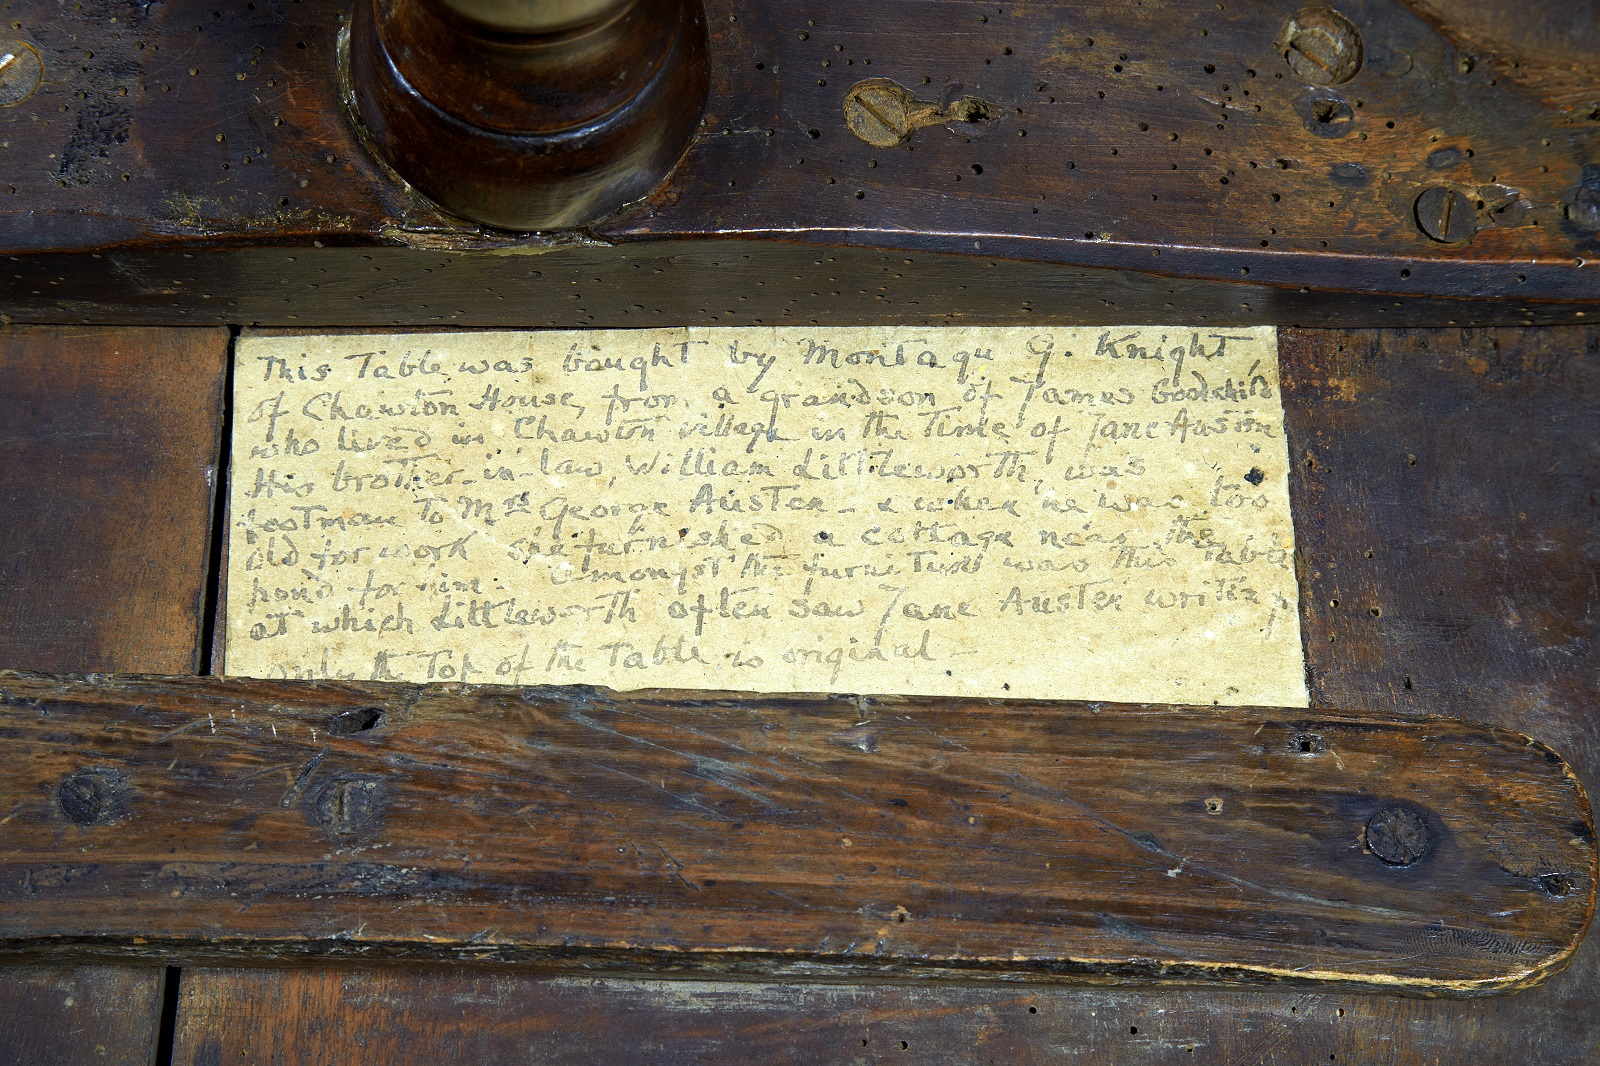 Note on the bottom of Jane Austen's writing table